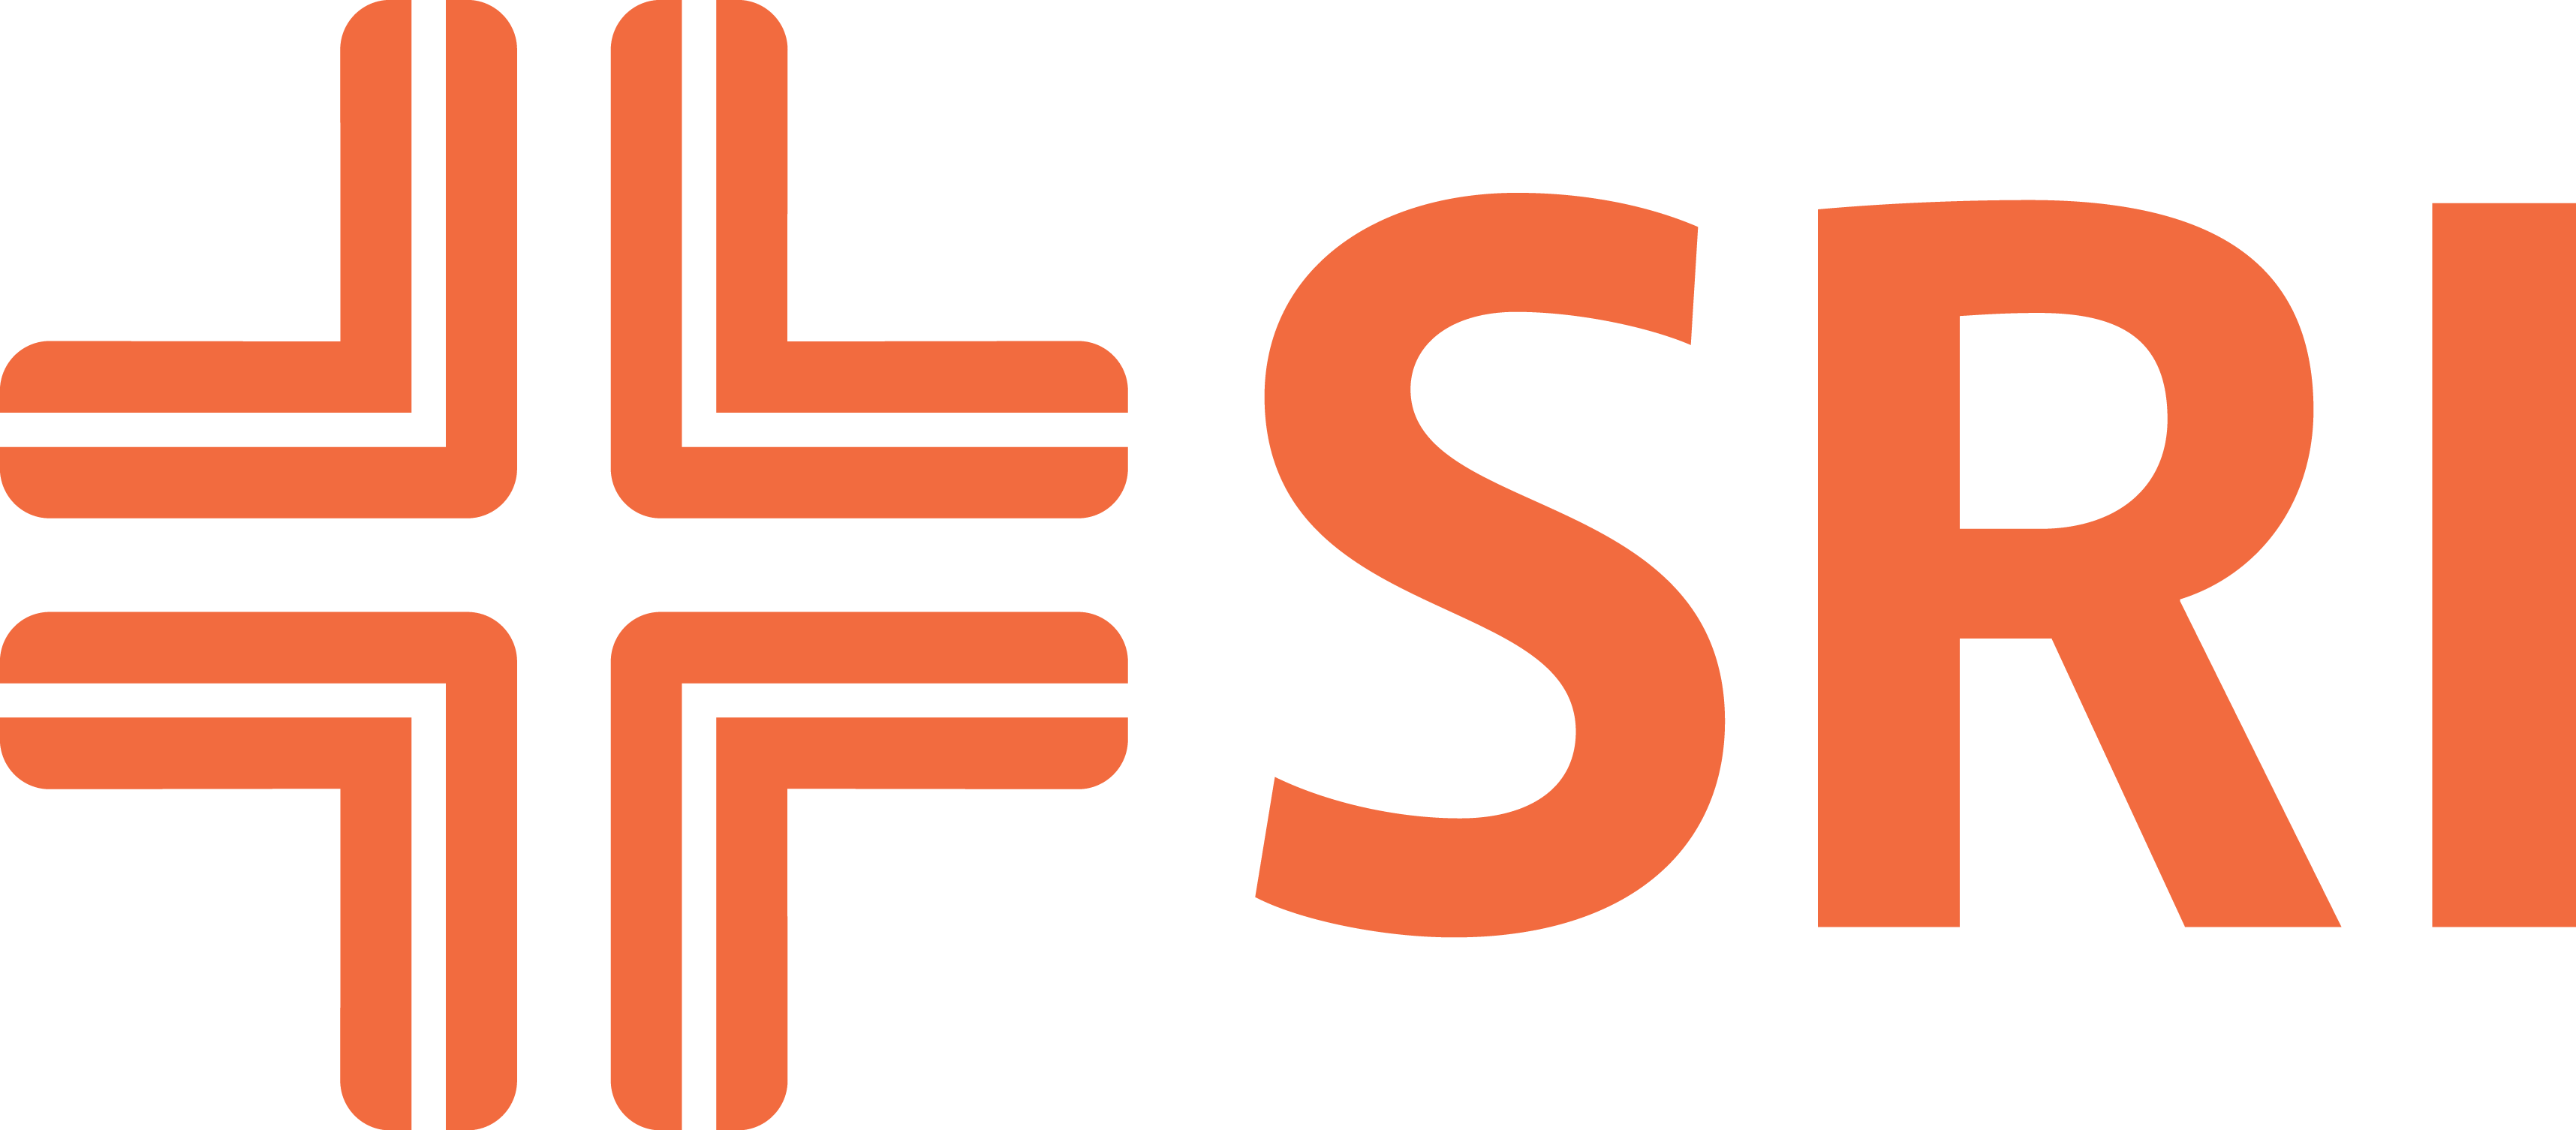 sri logo text